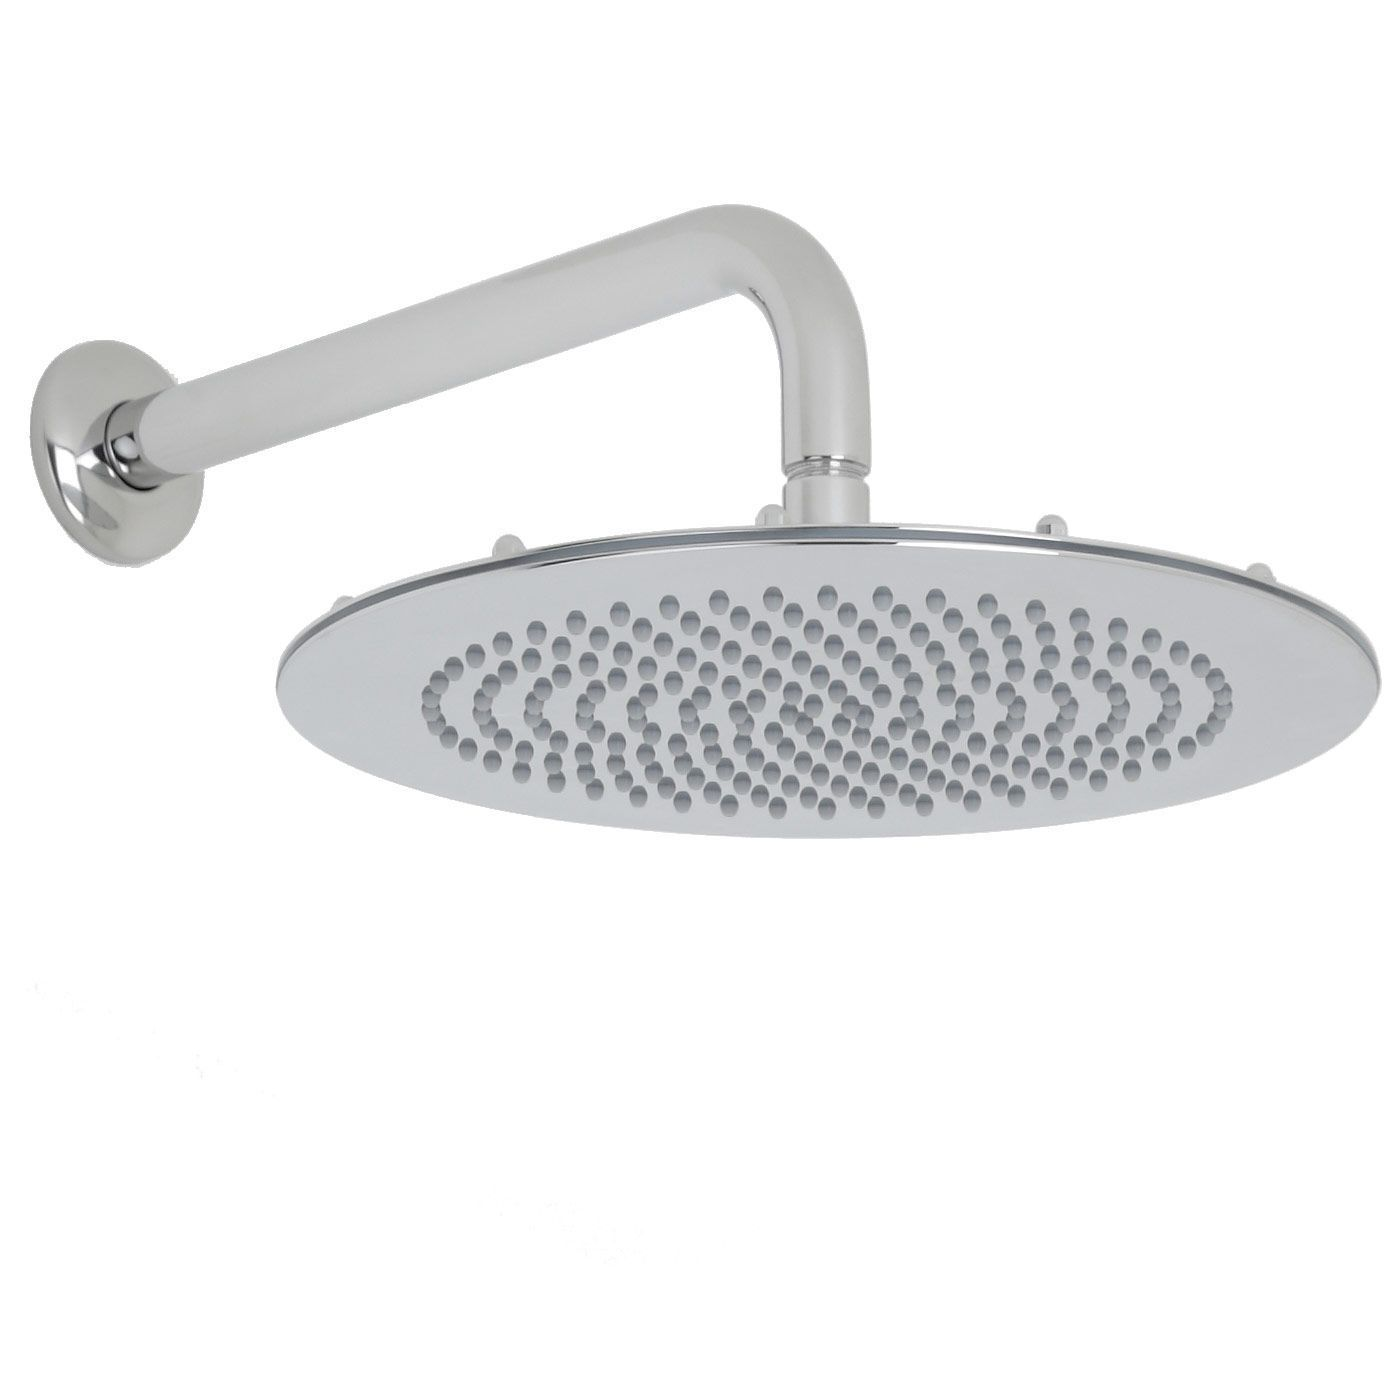 """Valquest 12"""" Round Thin Shower Head with Wall Arm"""